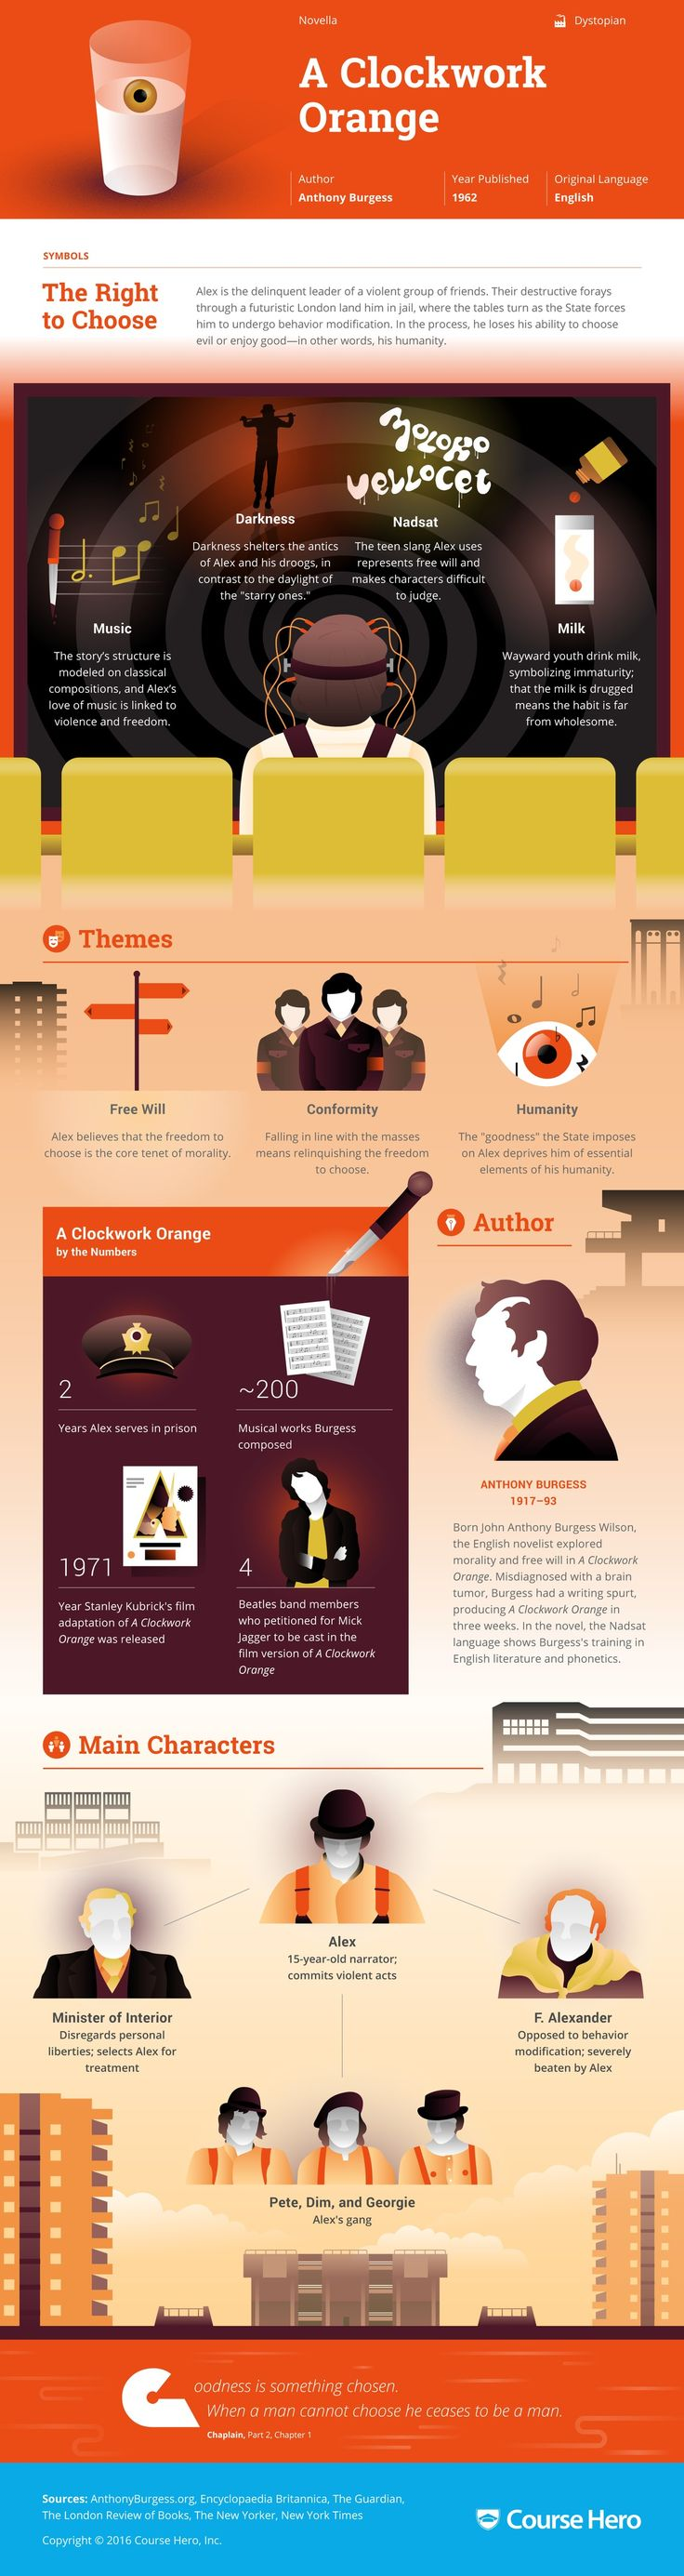 A Clockwork Orange Infographic | Course Hero